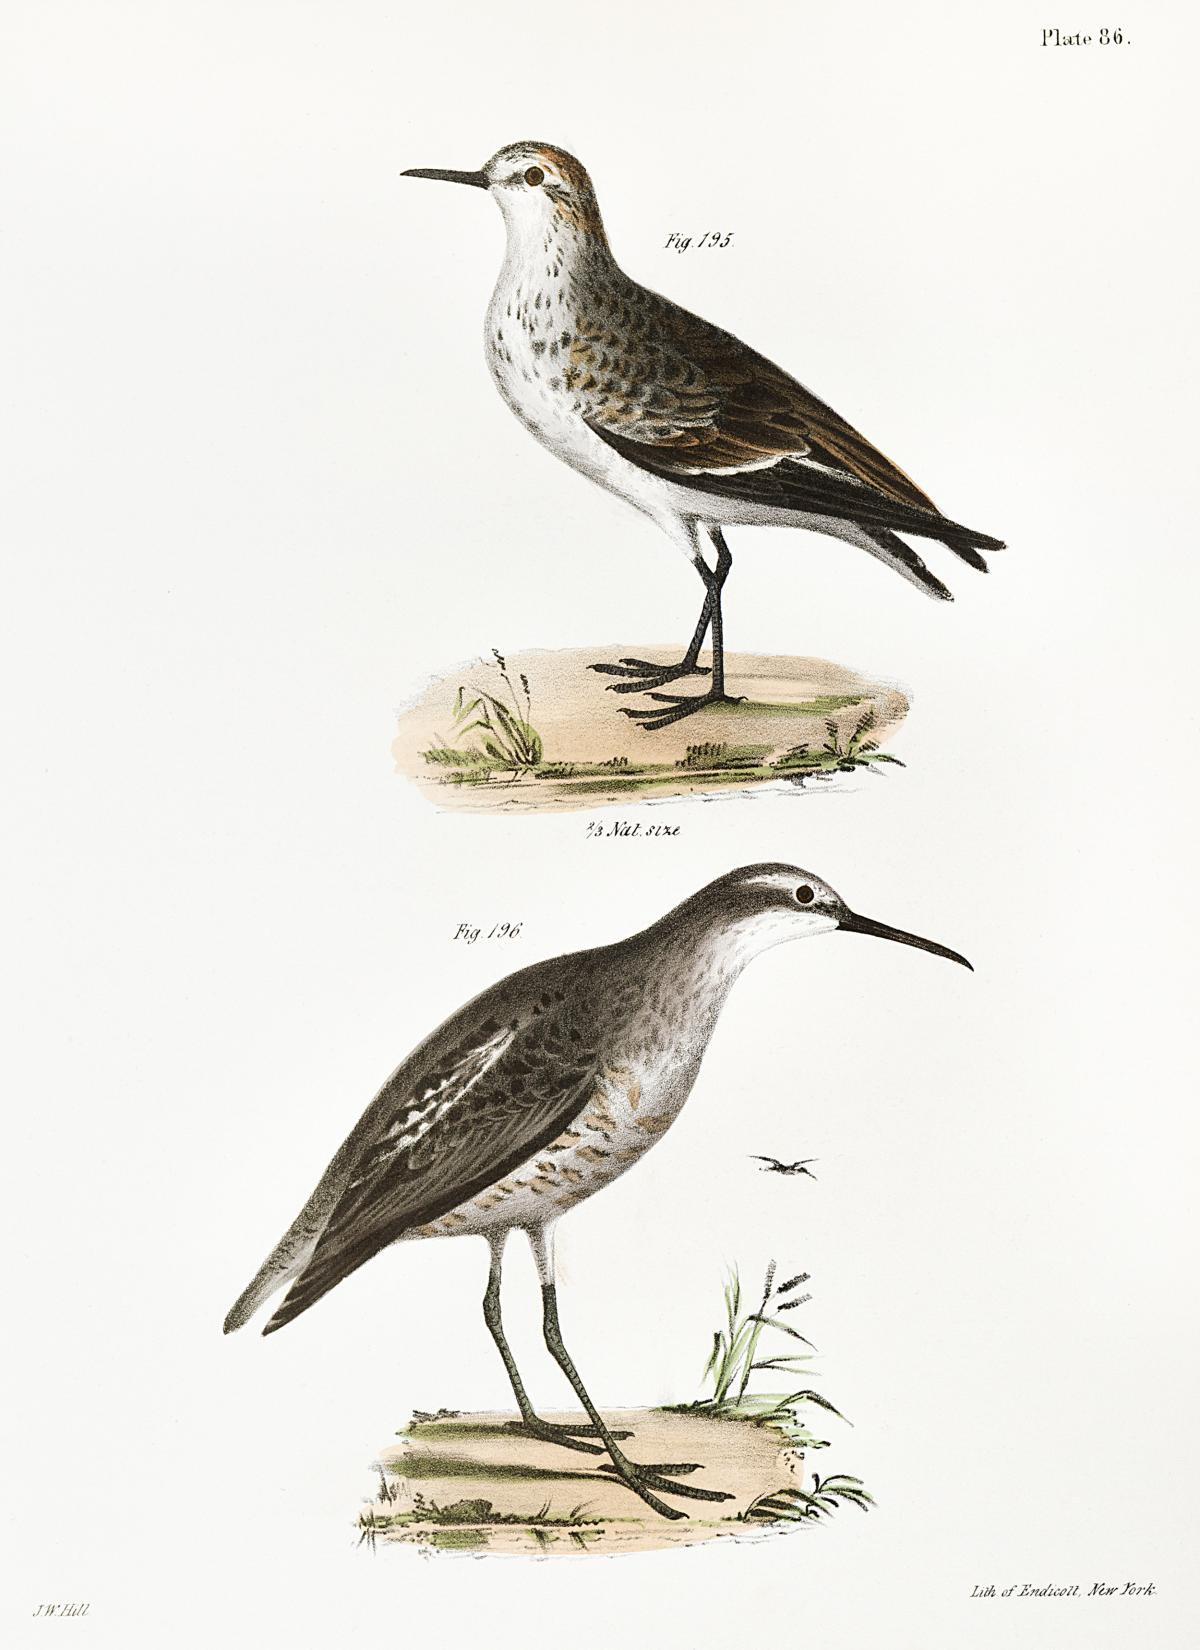 195. Semipalmated Sandpiper (Heterepoda semipalmata) 196. Long-legged Sandpiper (Hemipalma himantopus) illustration from Zoology of New York (1842–1844) by James Ellsworth De Kay. Original from The New York Public Library.  #397377